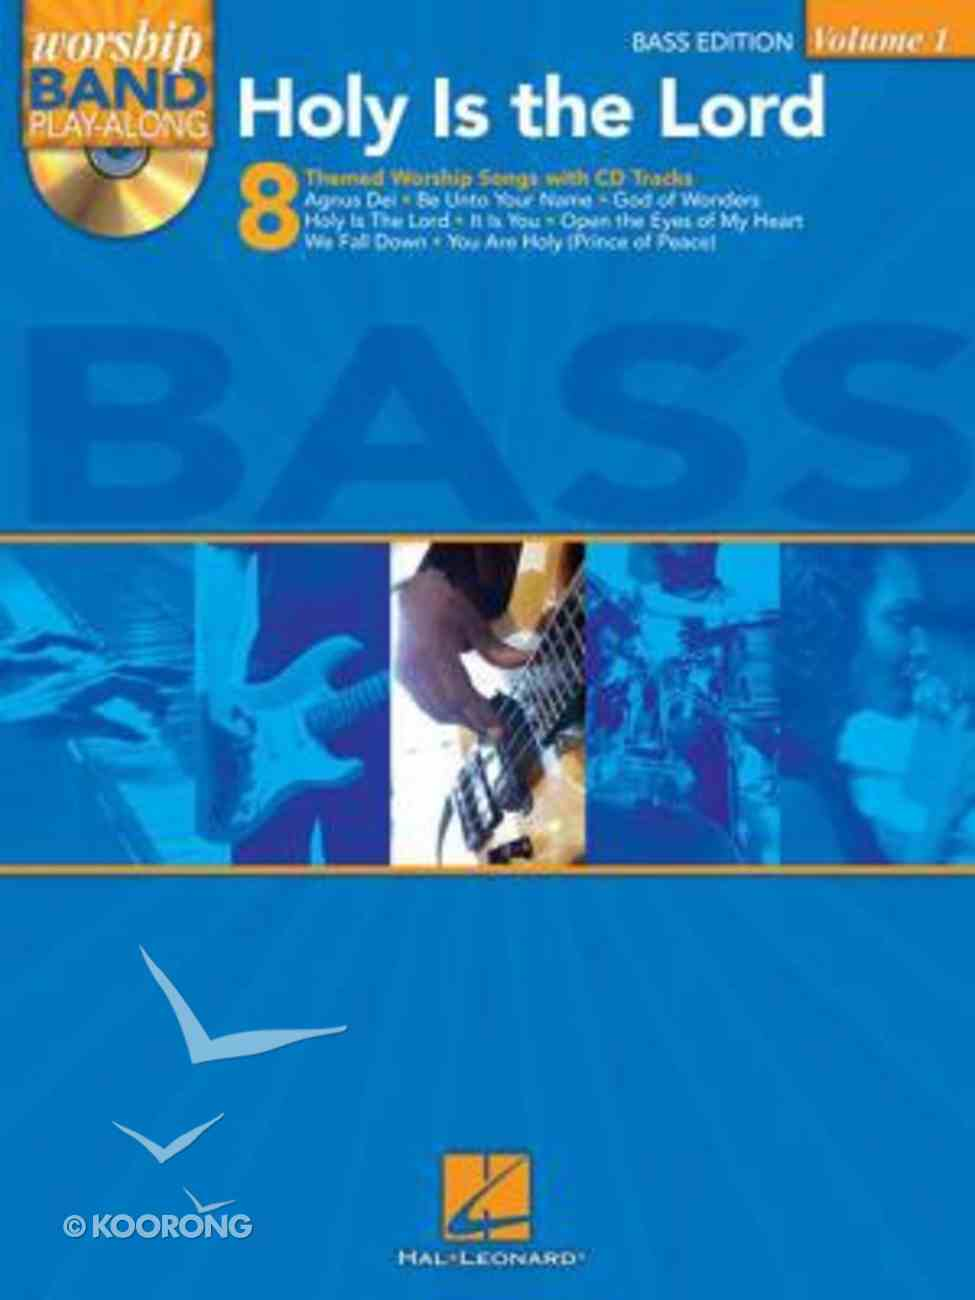 Holy is the Lord: Bass Edition Music Book Paperback